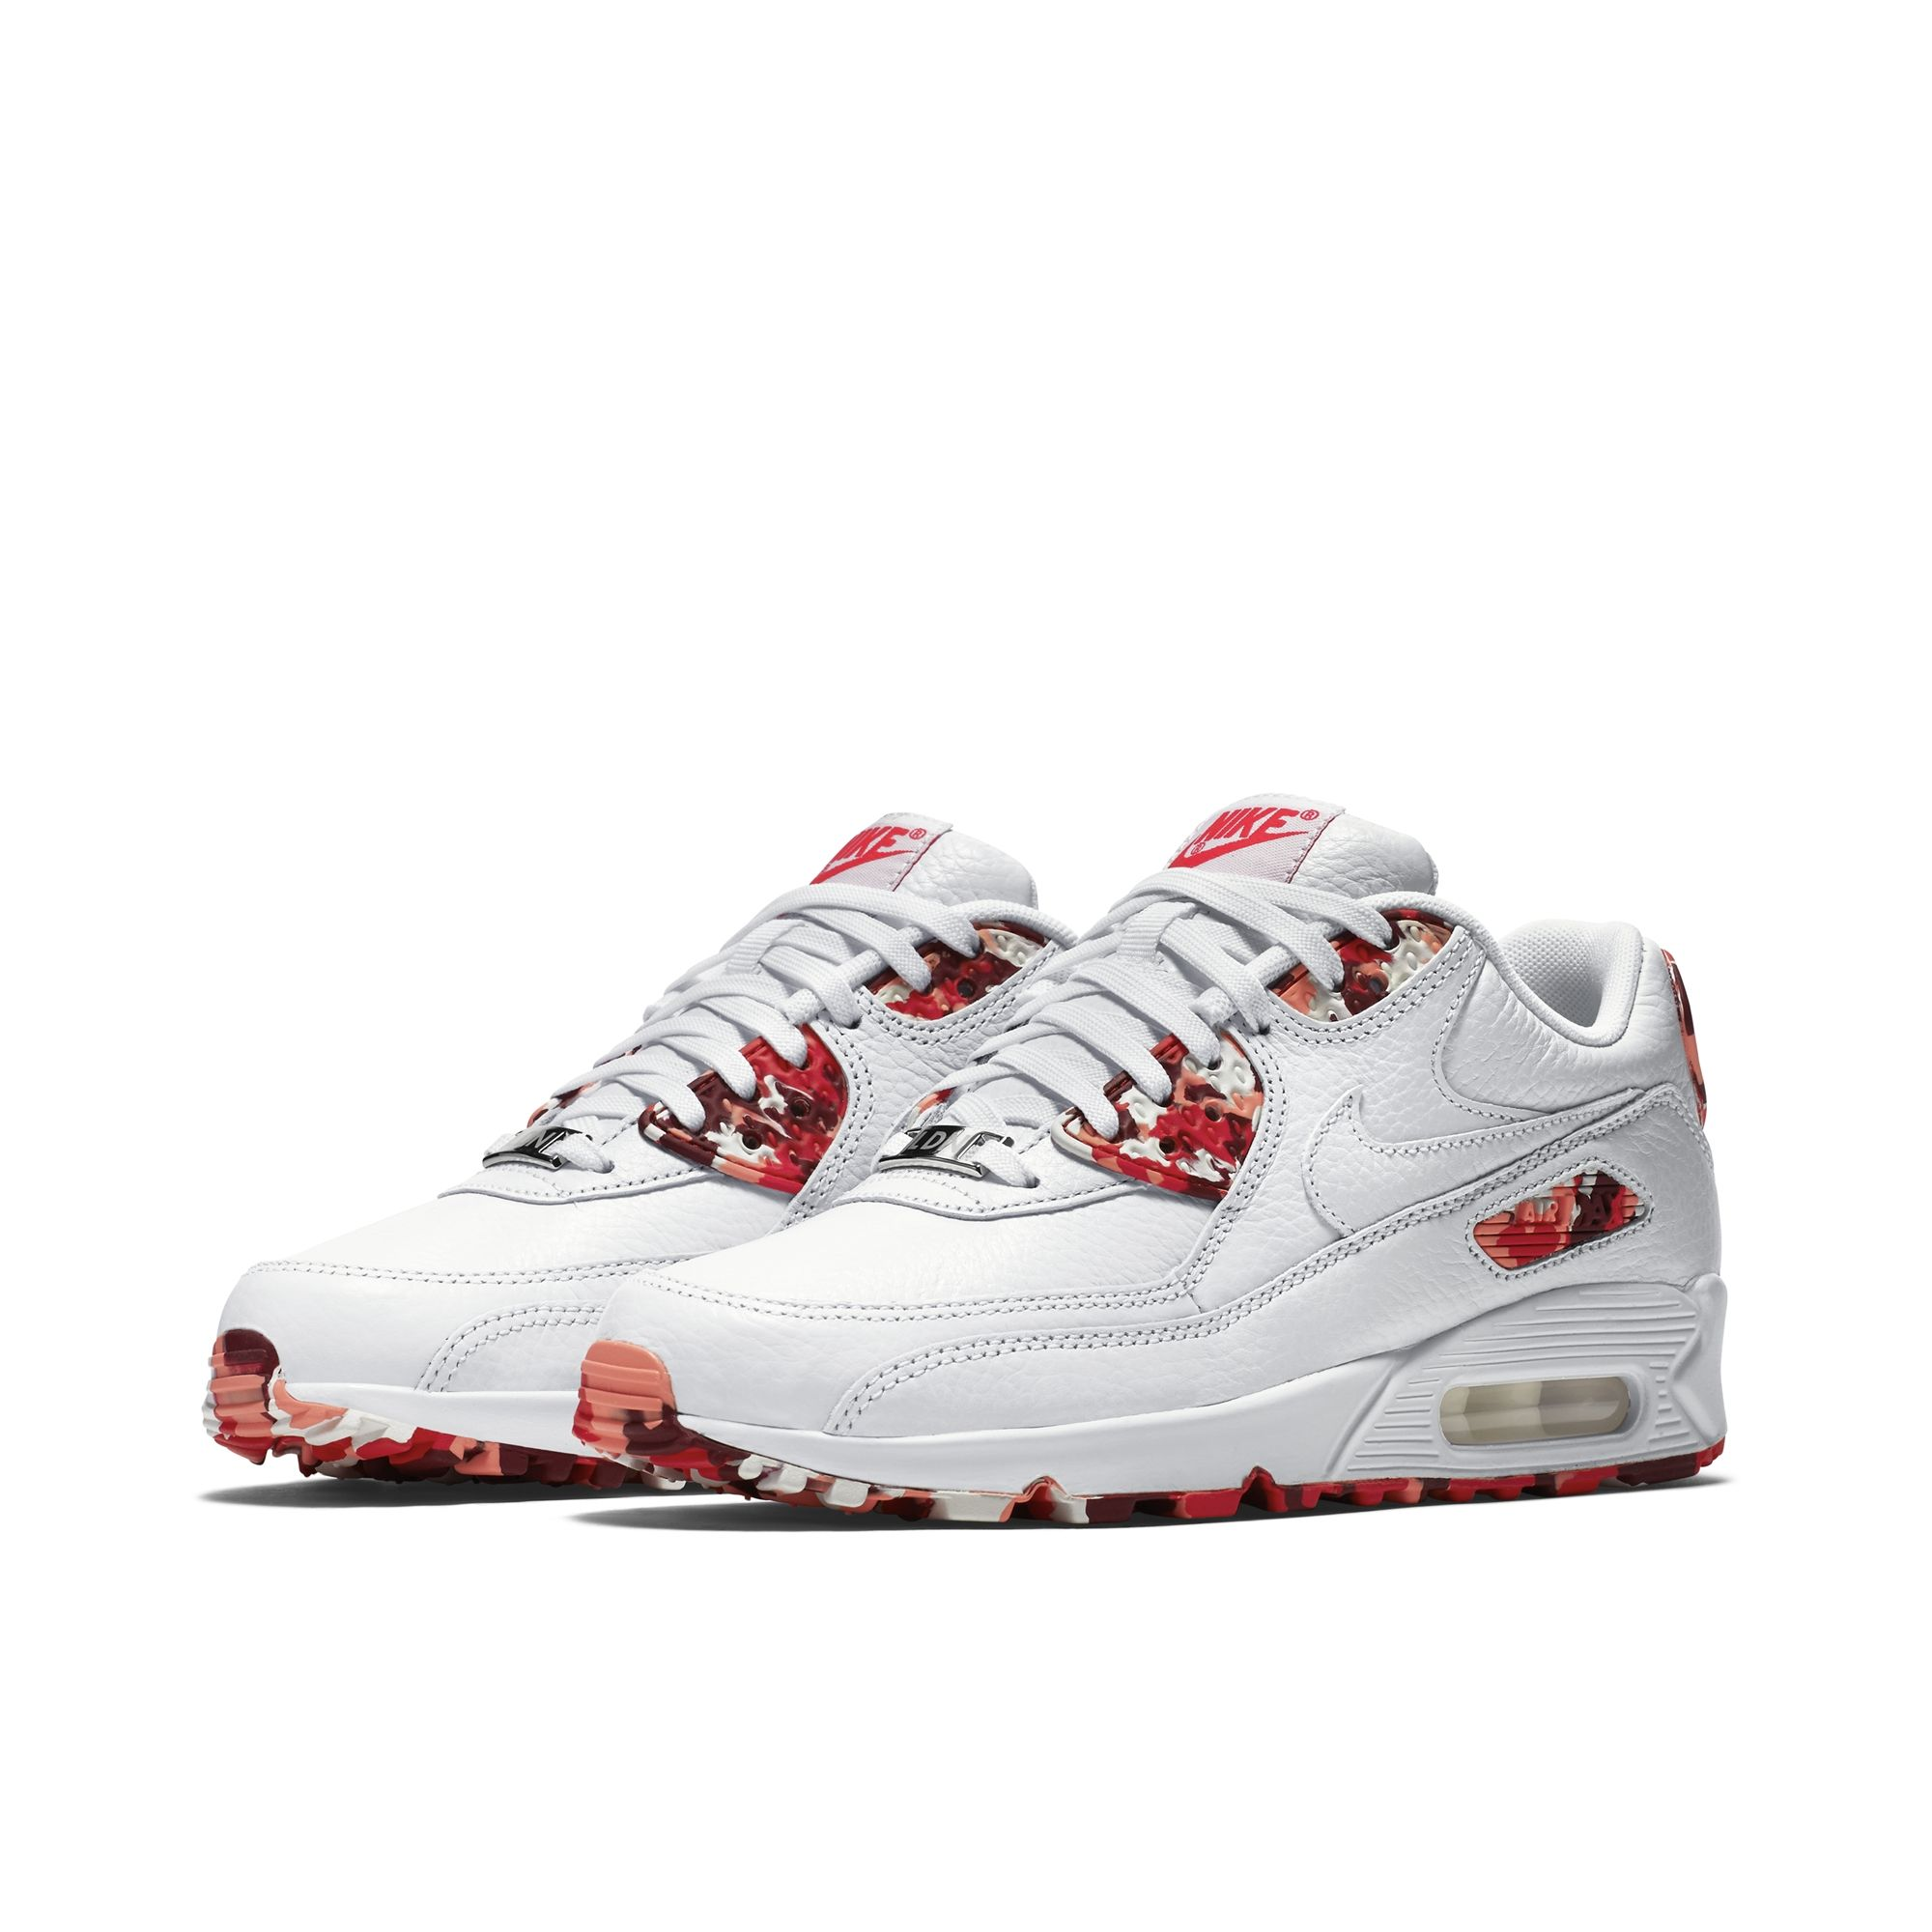 Nike Air Max 90 Chaussures Floral Beige Rose